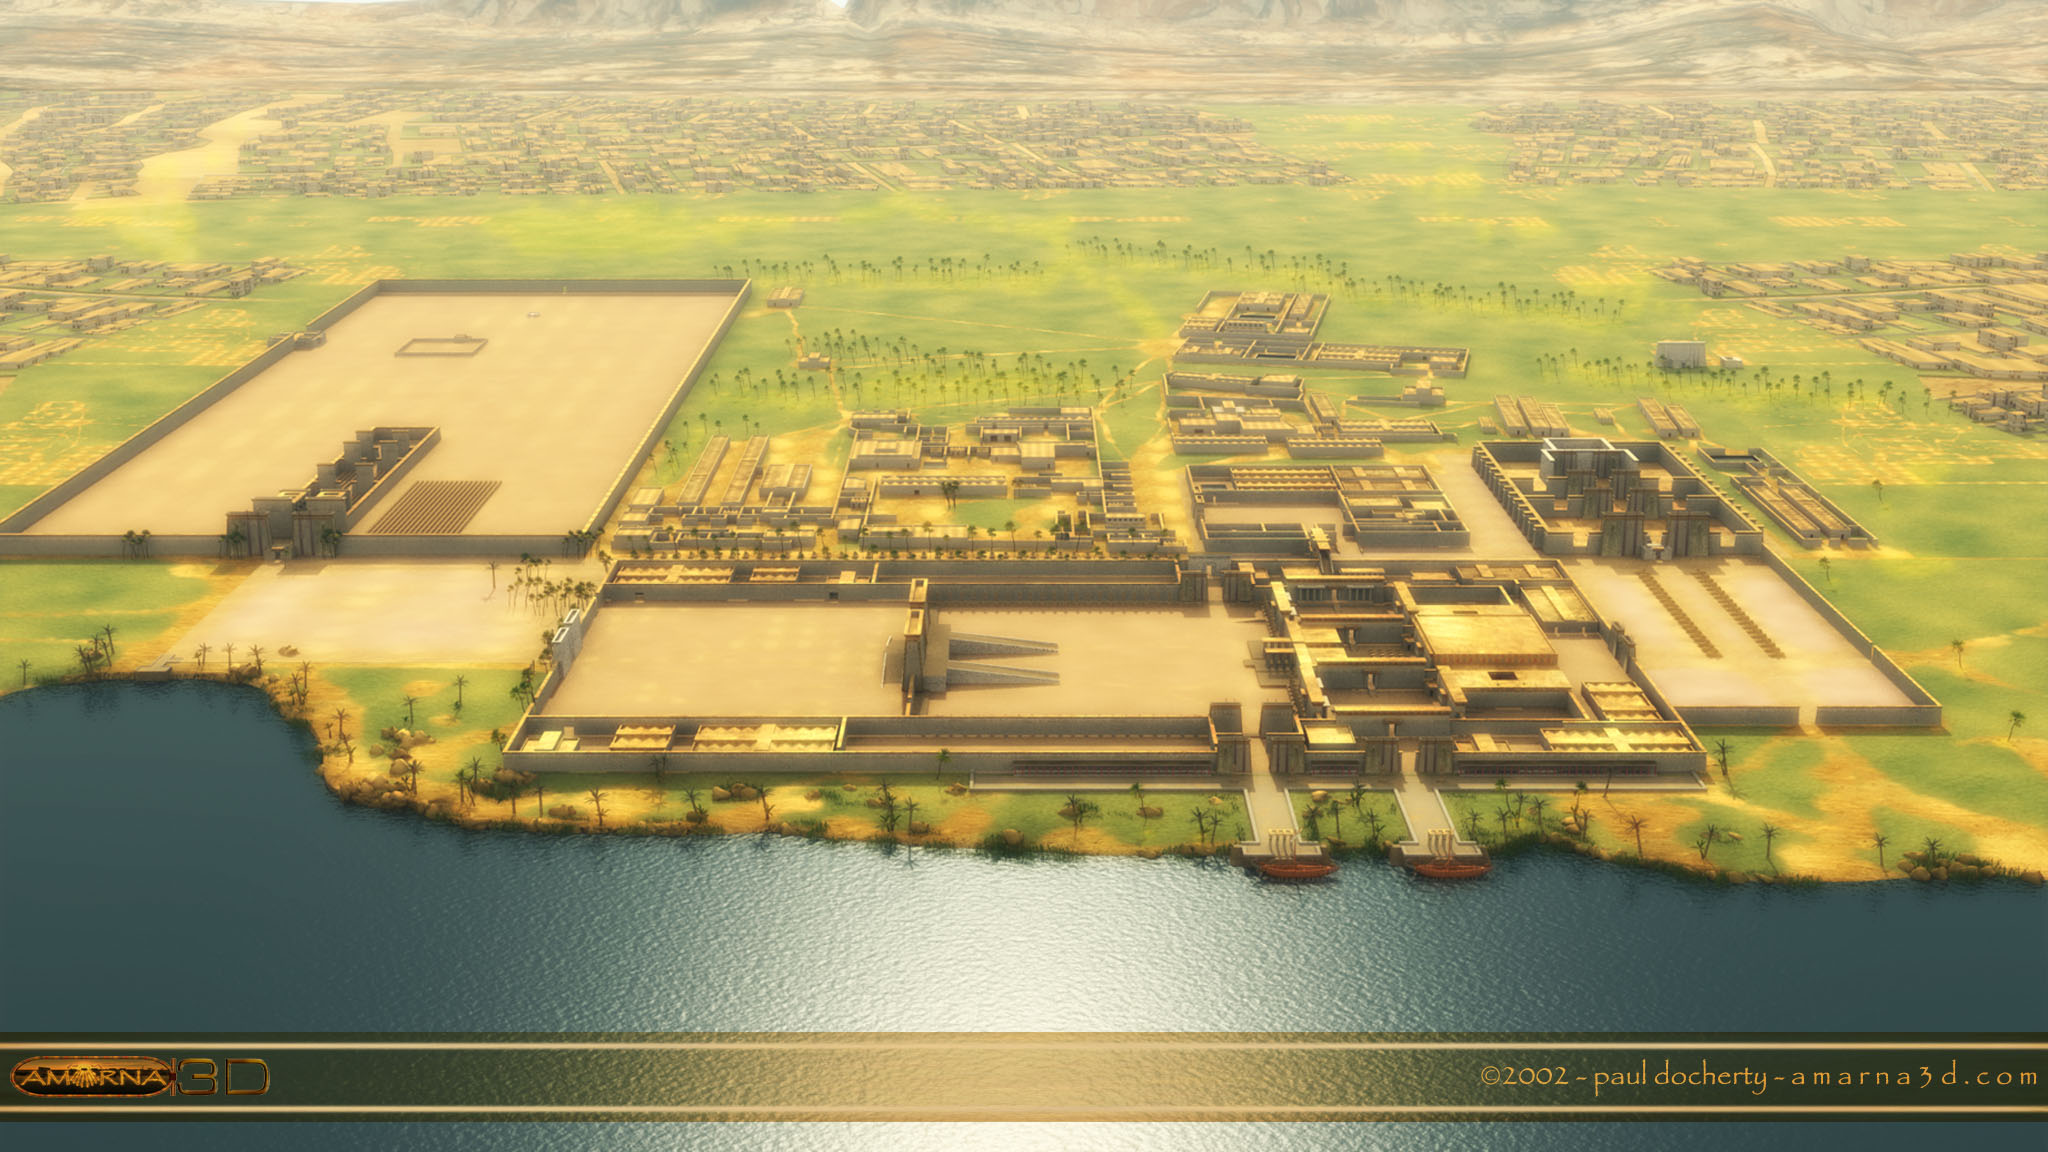 Perspective view of the early city model